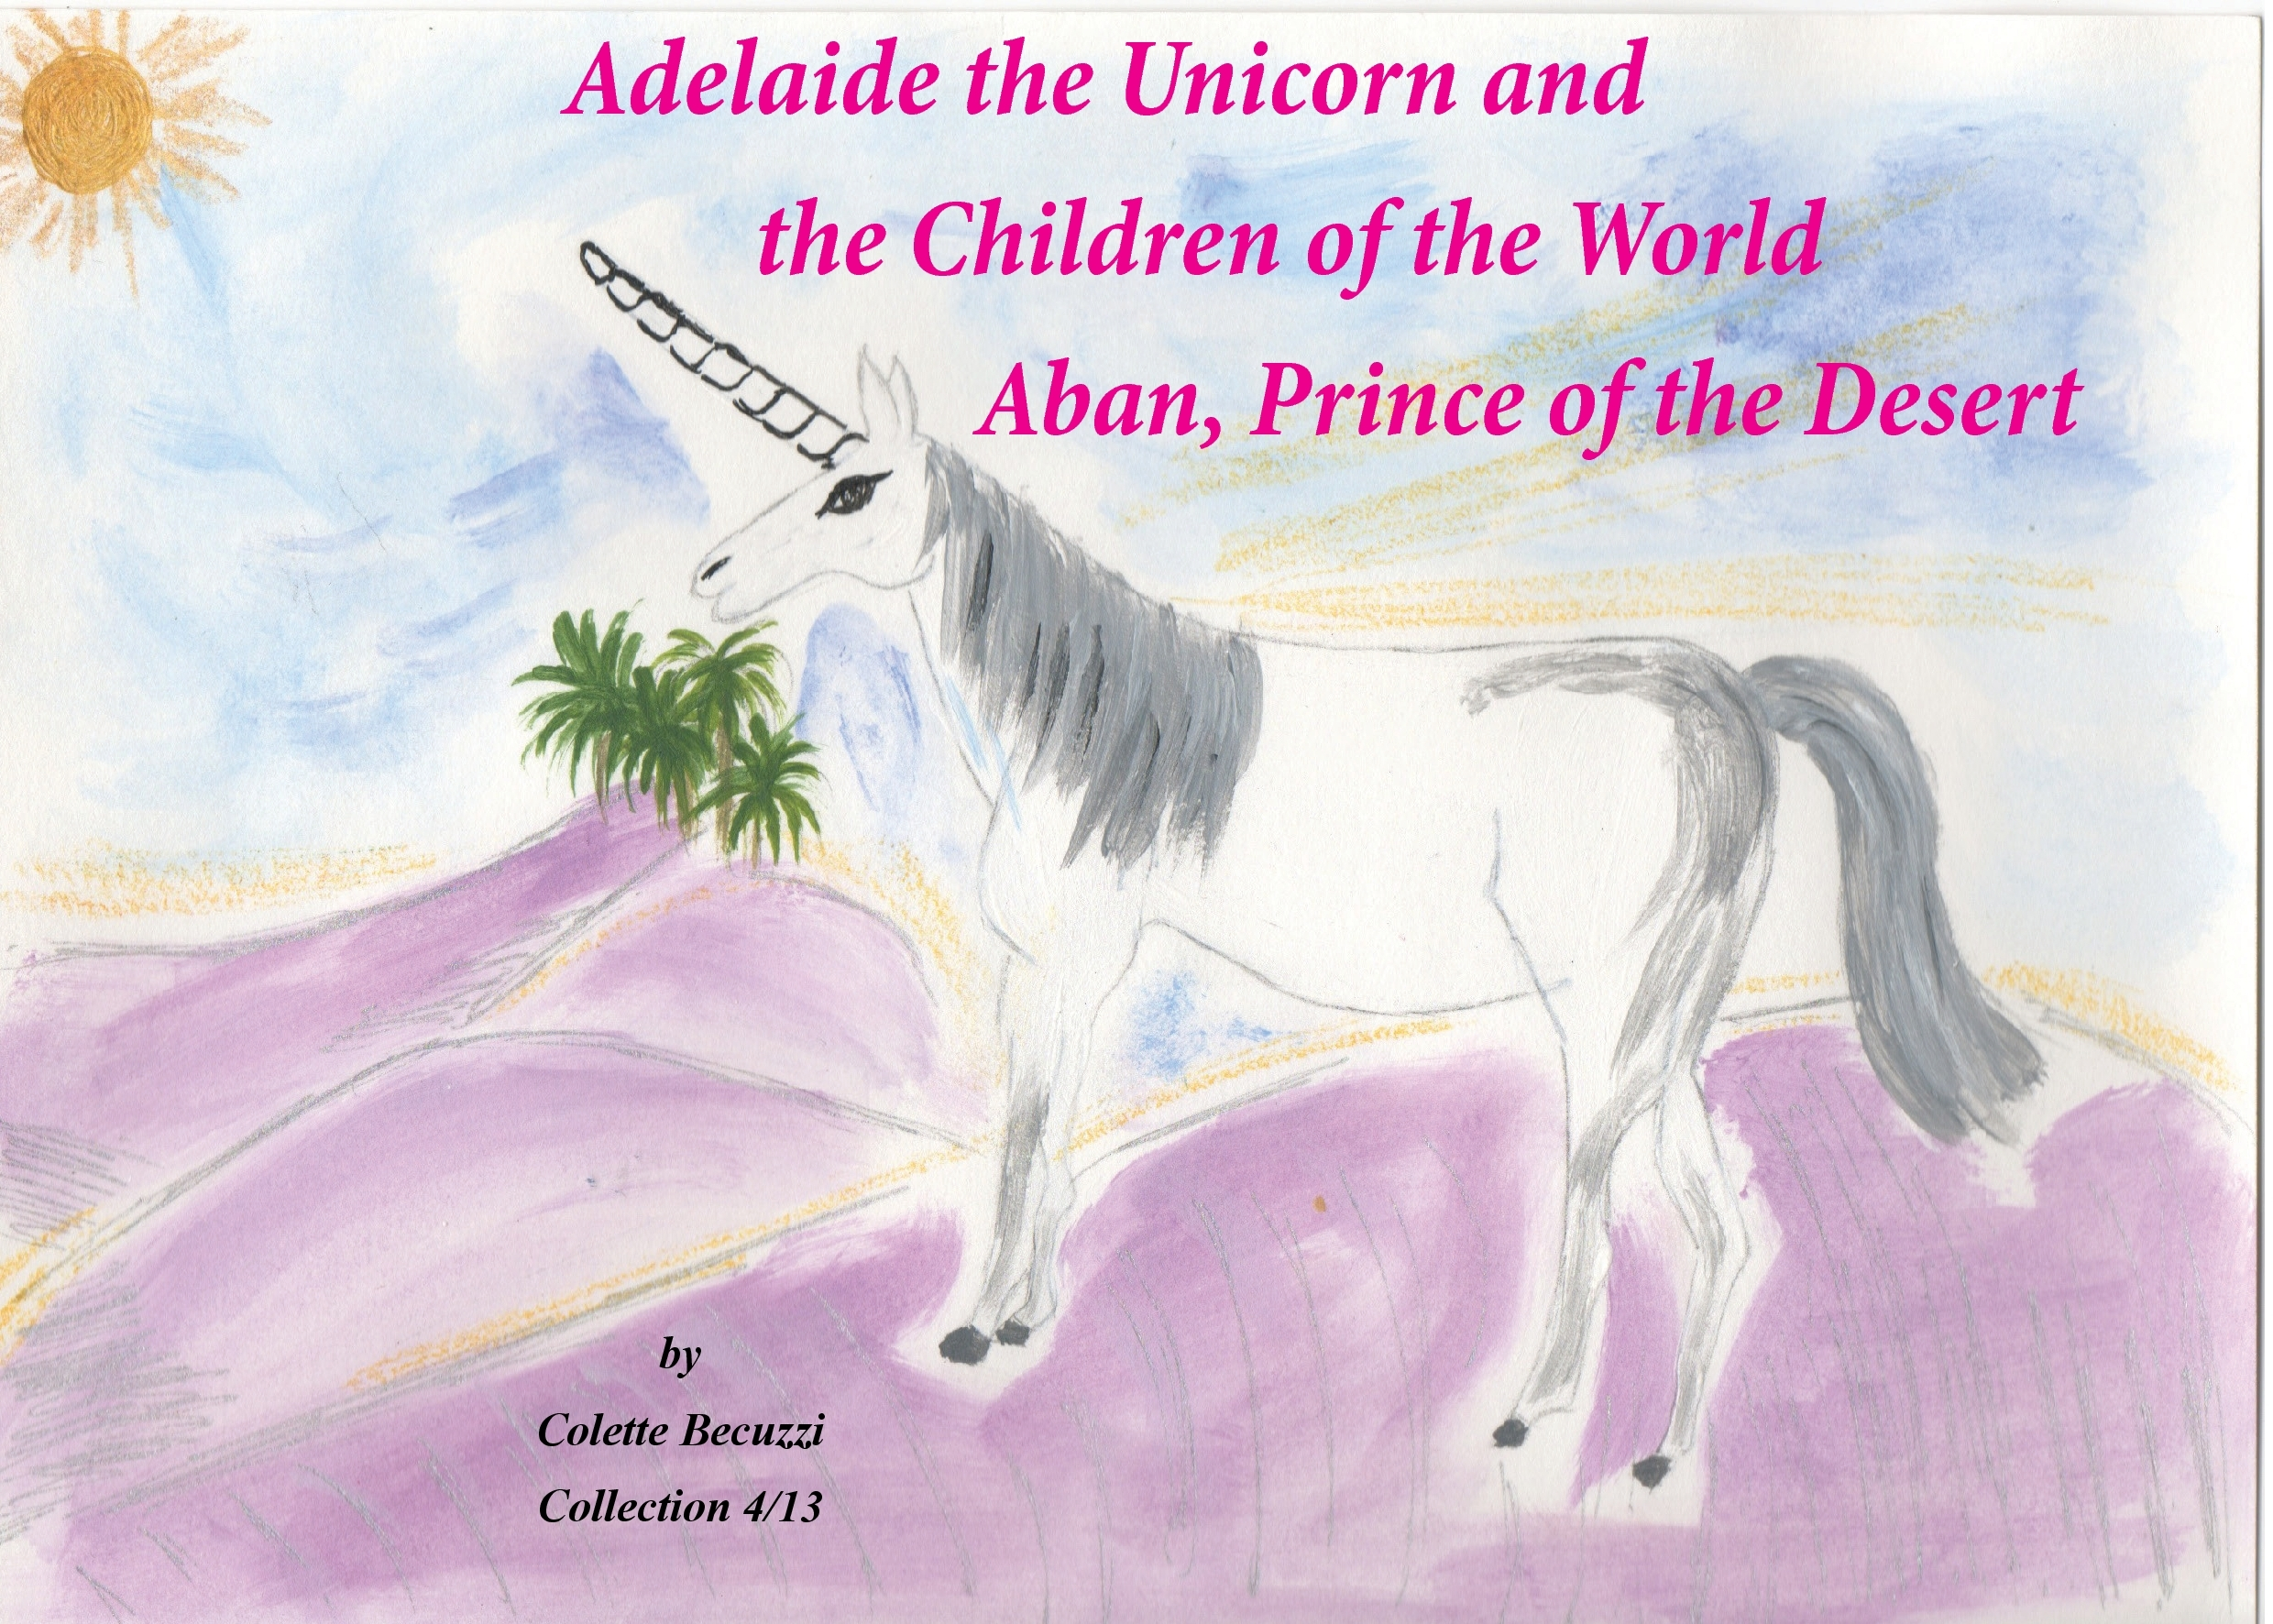 ADELAIDE THE UNICORN AND THE CHILDREN OF THE WORLD